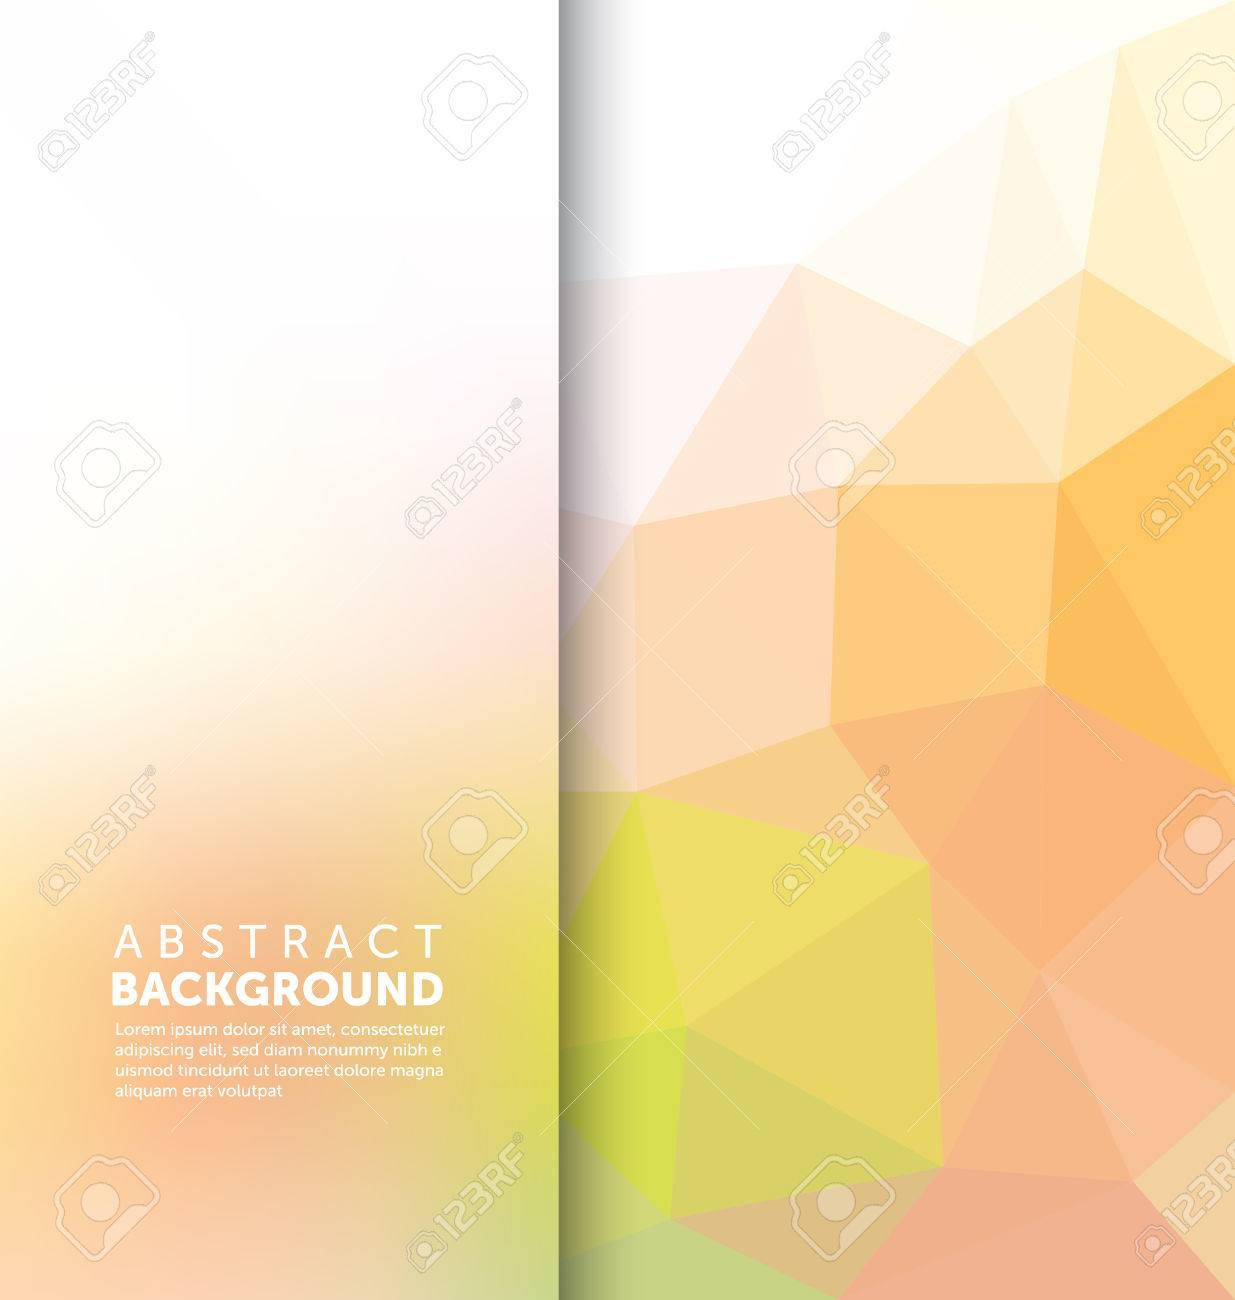 Abstract Background - Triangle and blurred banner design - 45557584